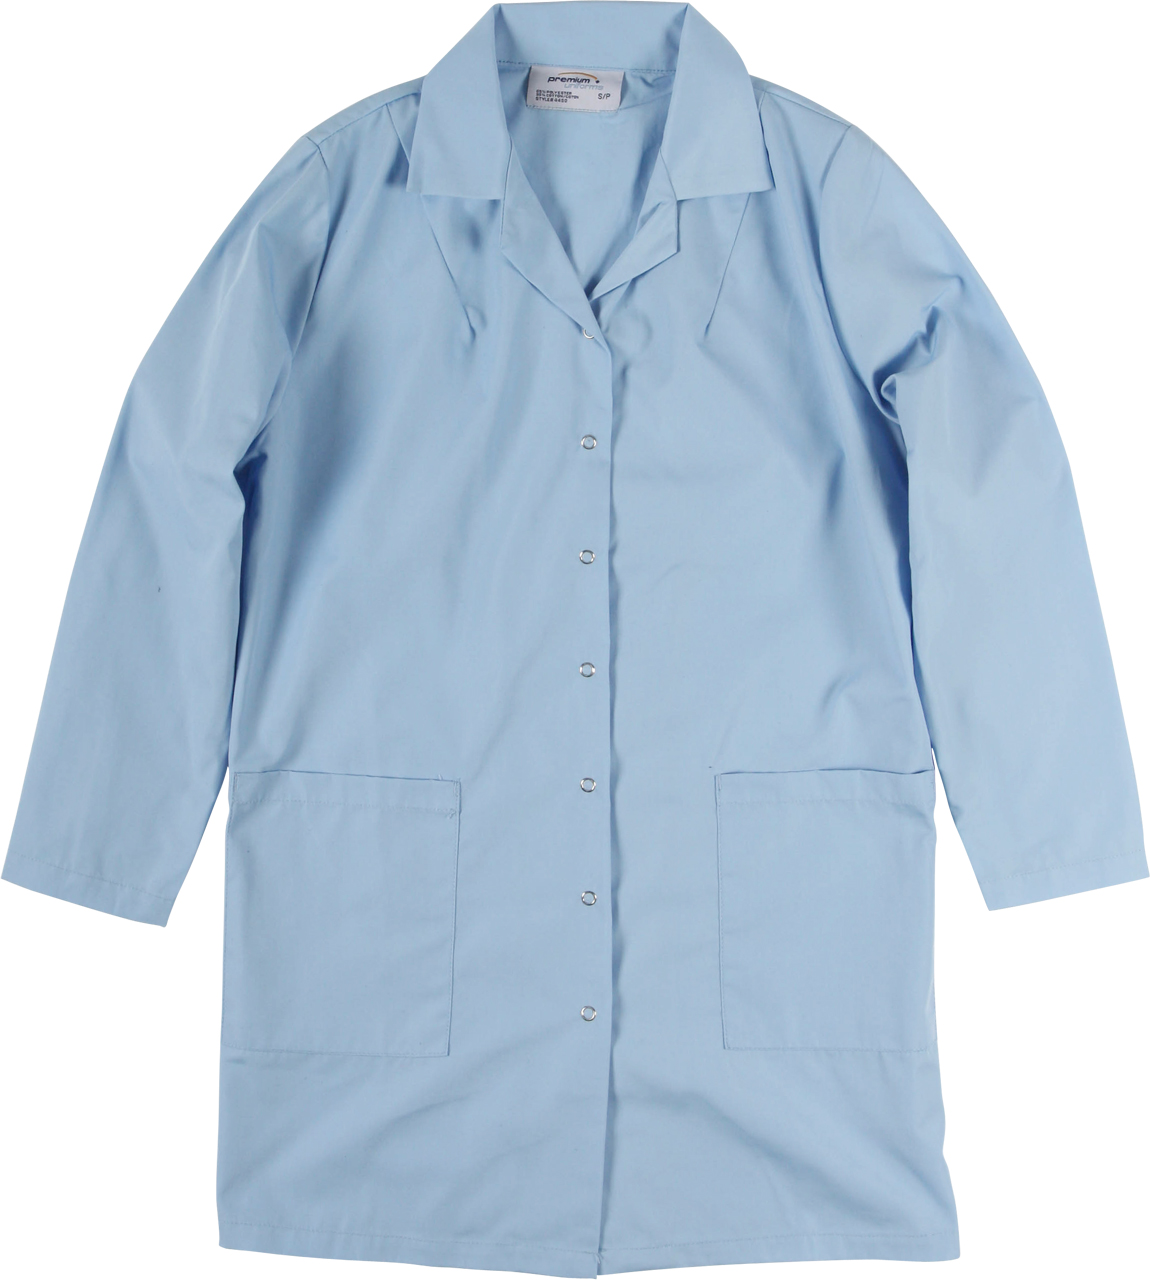 Picture of Premium Uniforms Long Sleeve With Snap Closure Smock